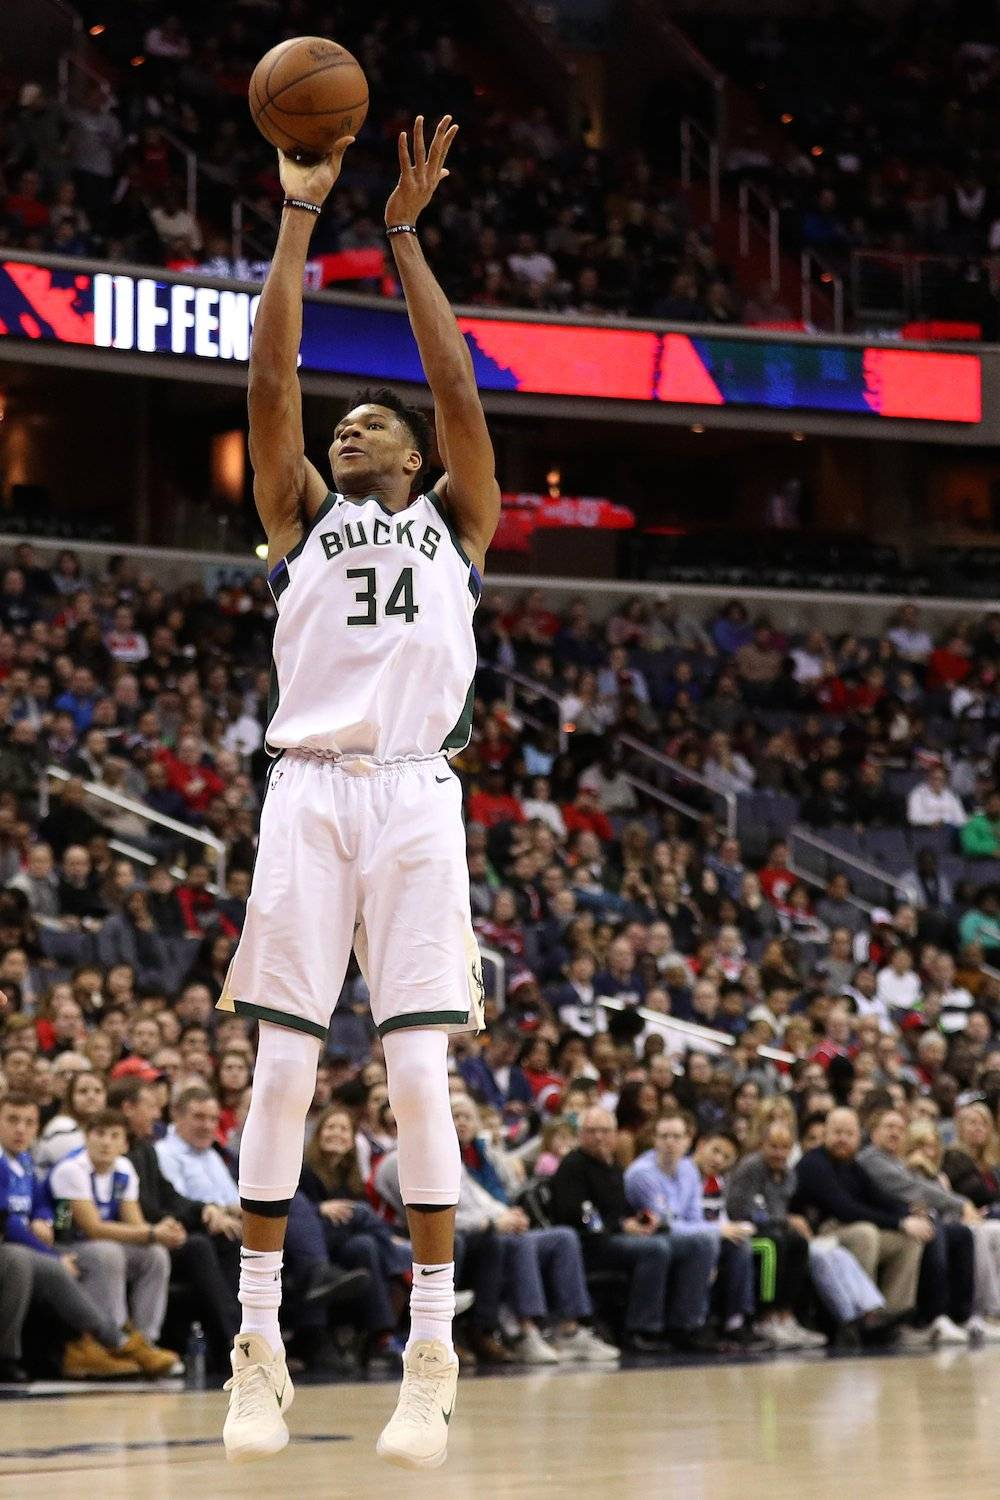 Giannis Antetokounmpo / Getty Images